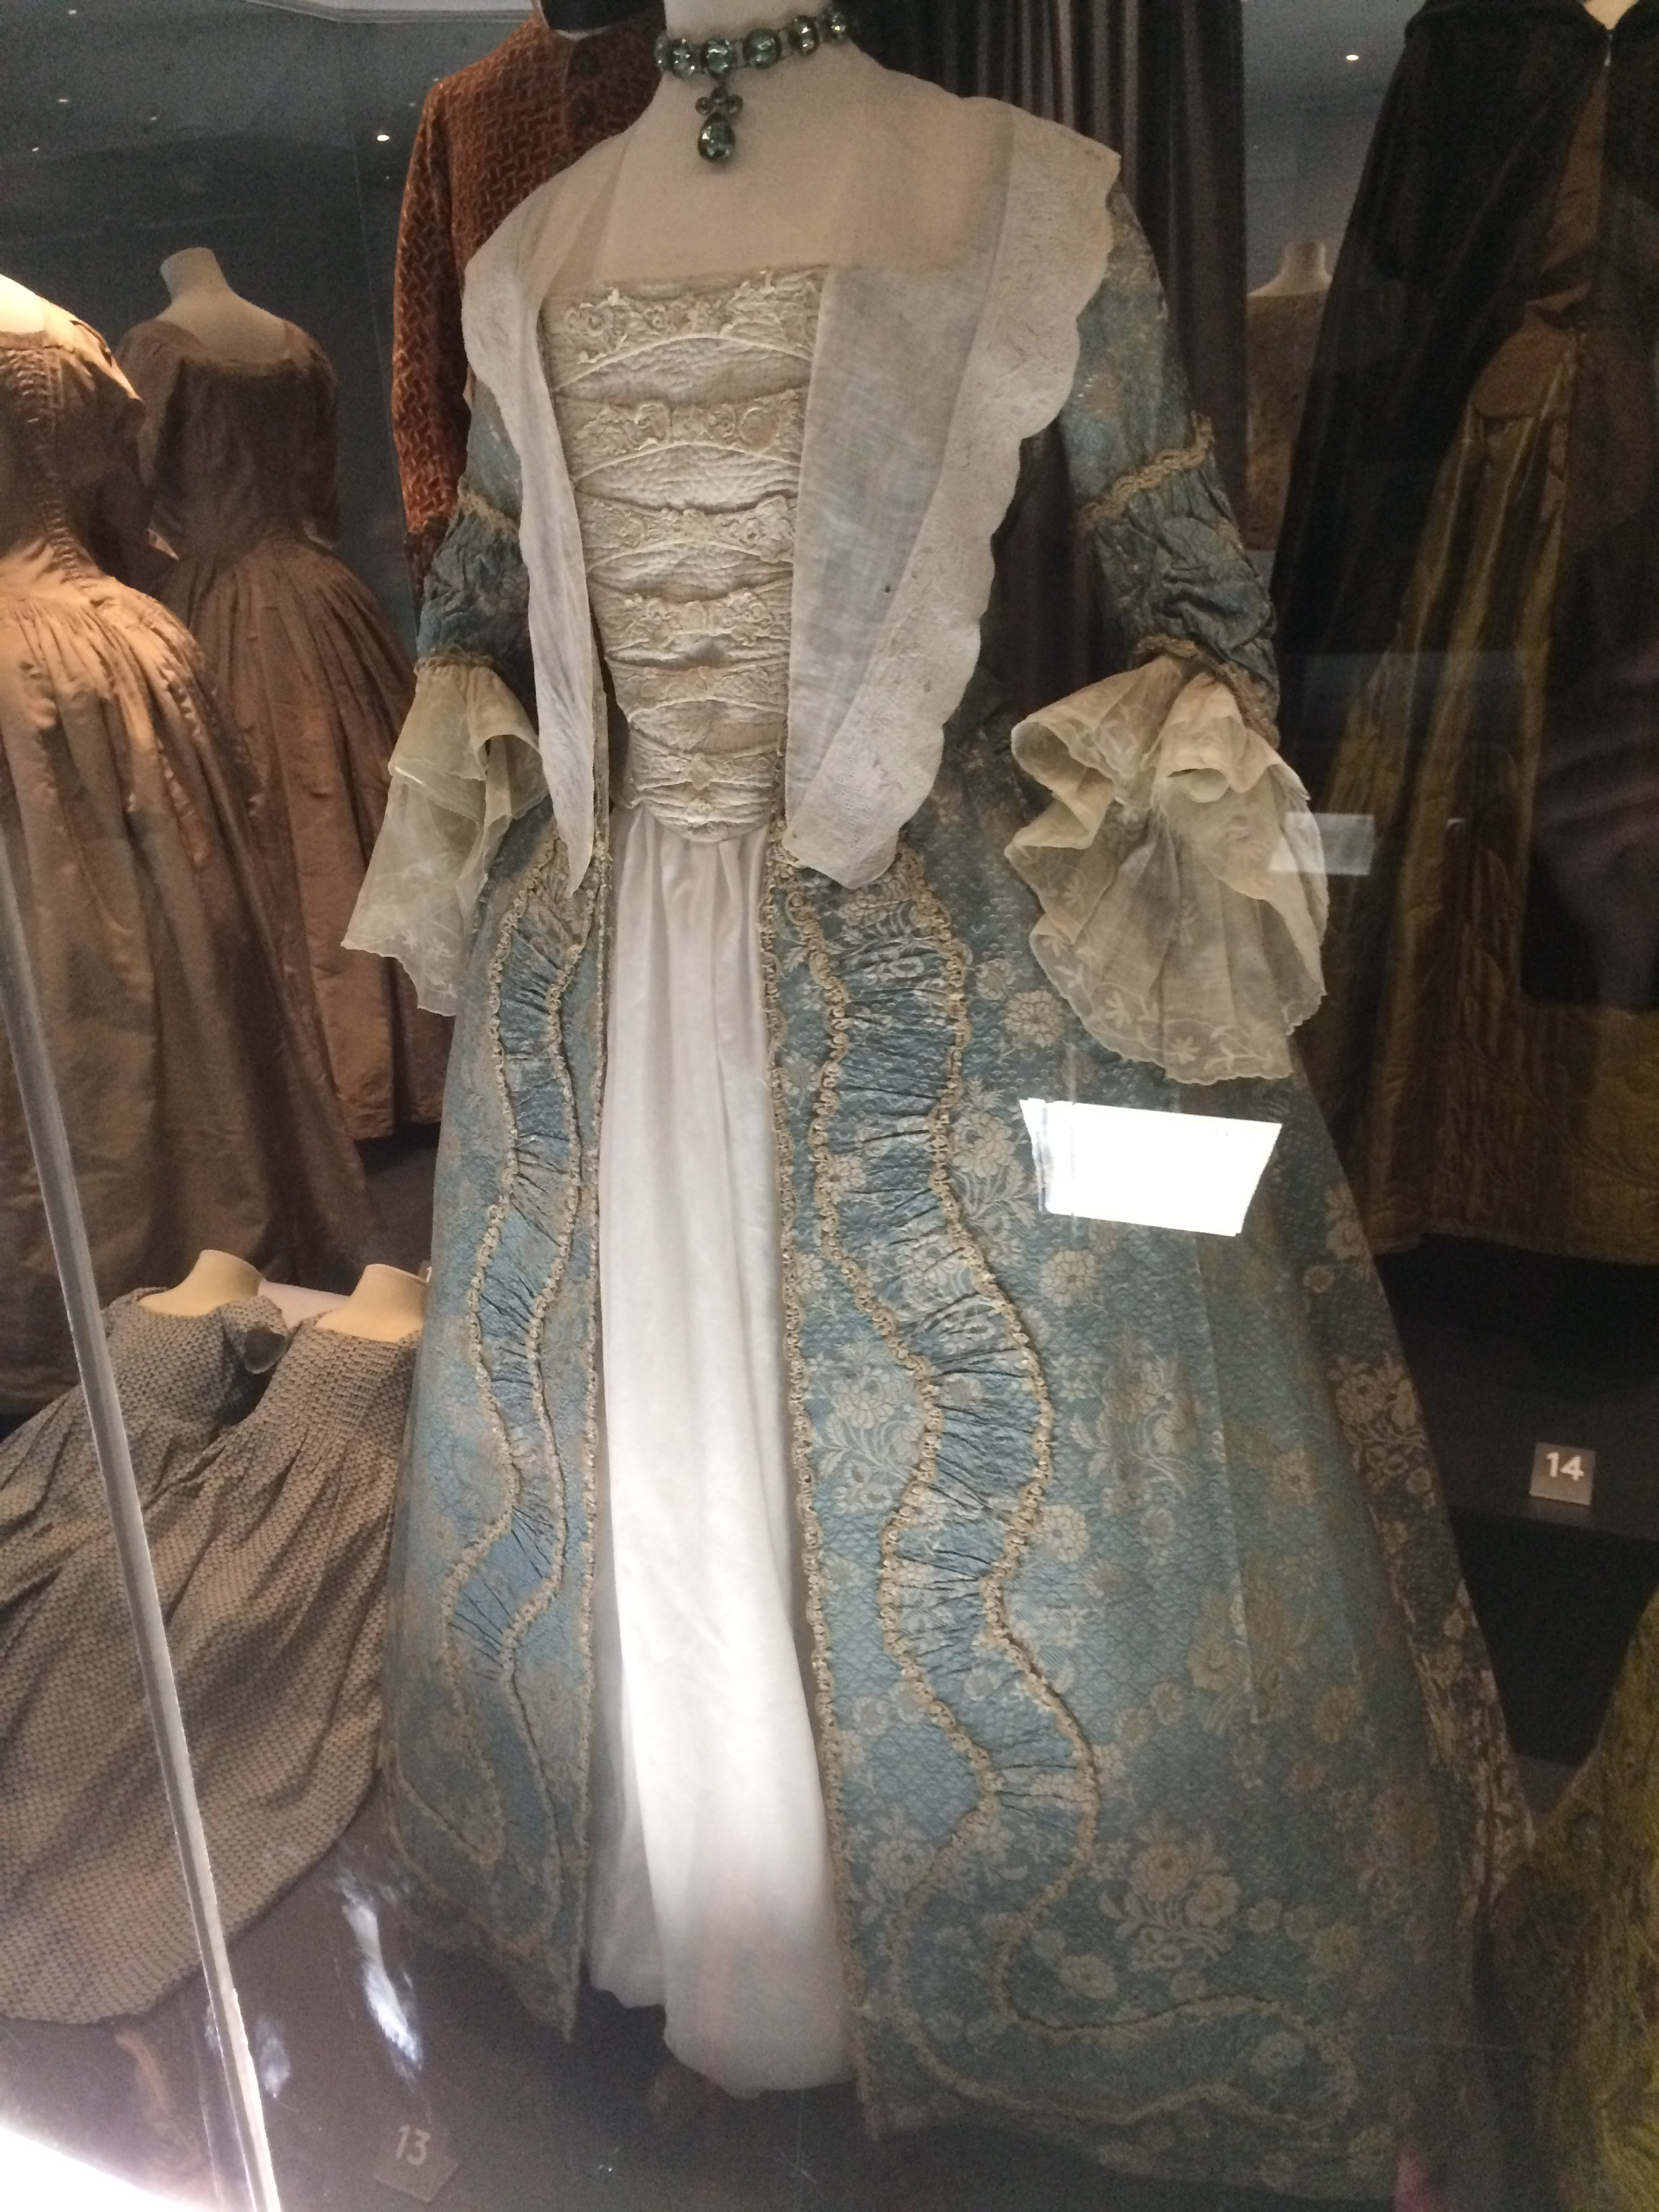 A gorgeous 18th century dress.